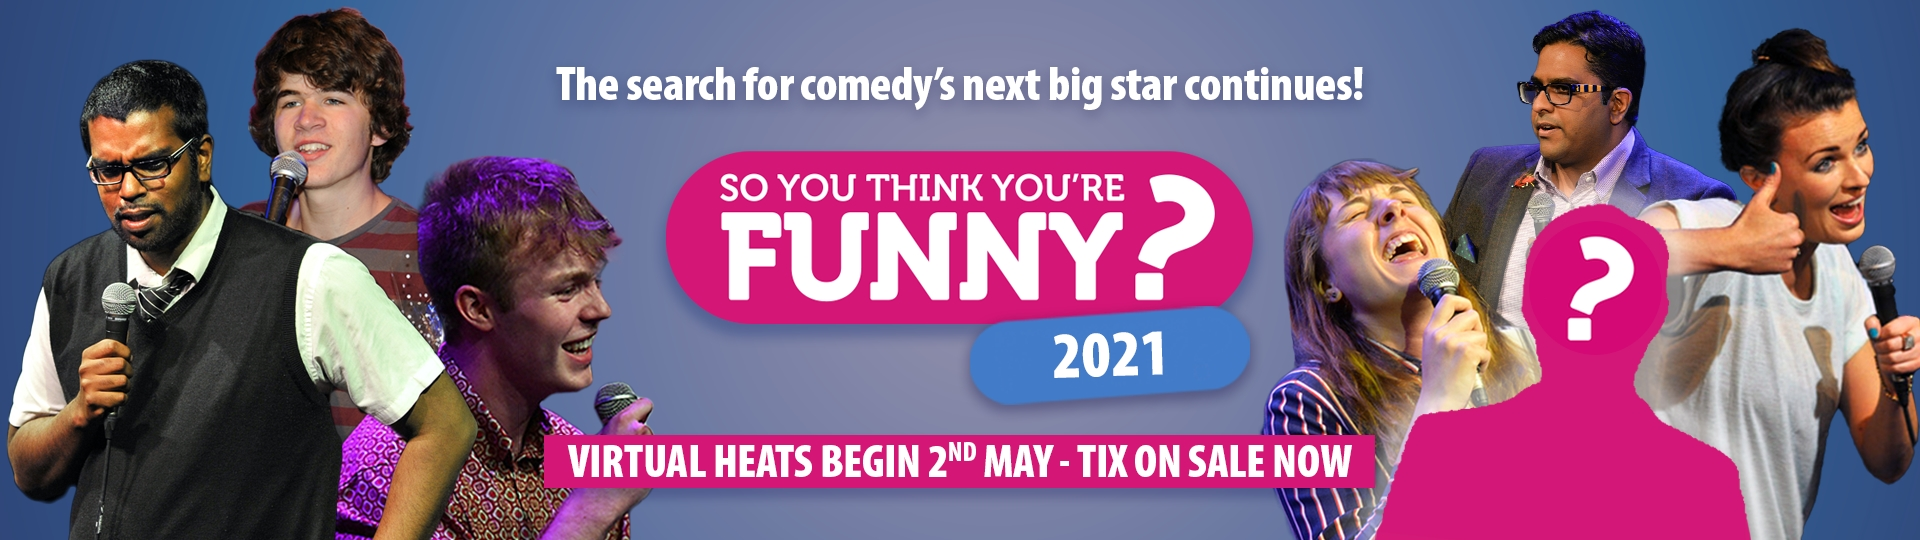 So You Think You're Funny? 2021 Tickets now on sale